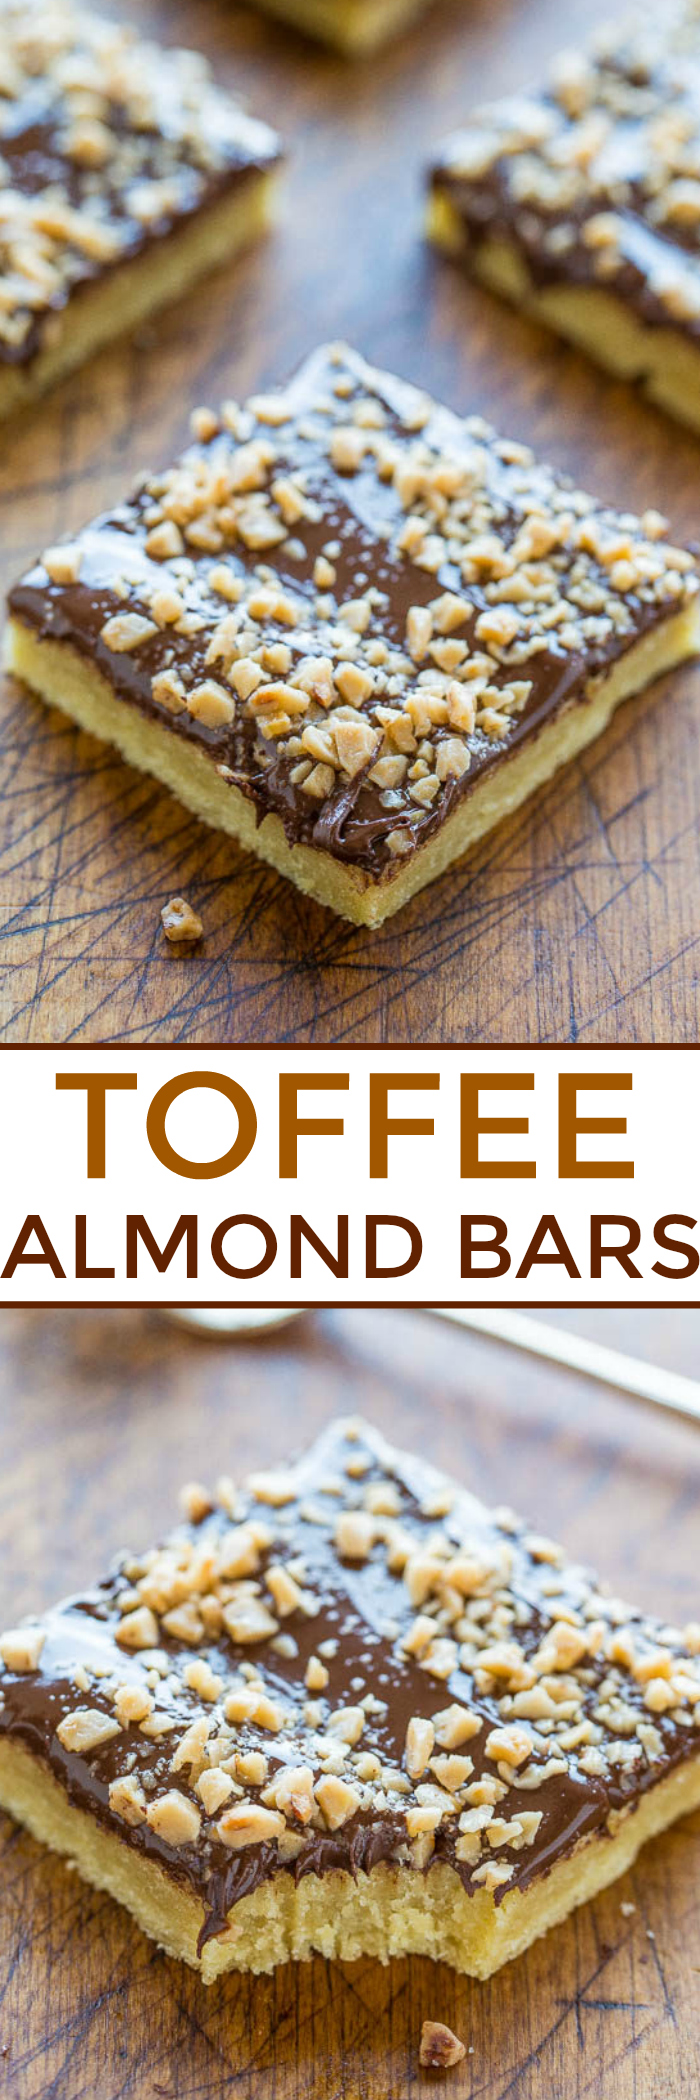 Toffee Almond Bars - An ultra BUTTERY base made with almond extract and topped with CHOCOLATE and TOFFEE BITS!! An easy dessert that's ready in 15 minutes but tastes like you slaved over it!!